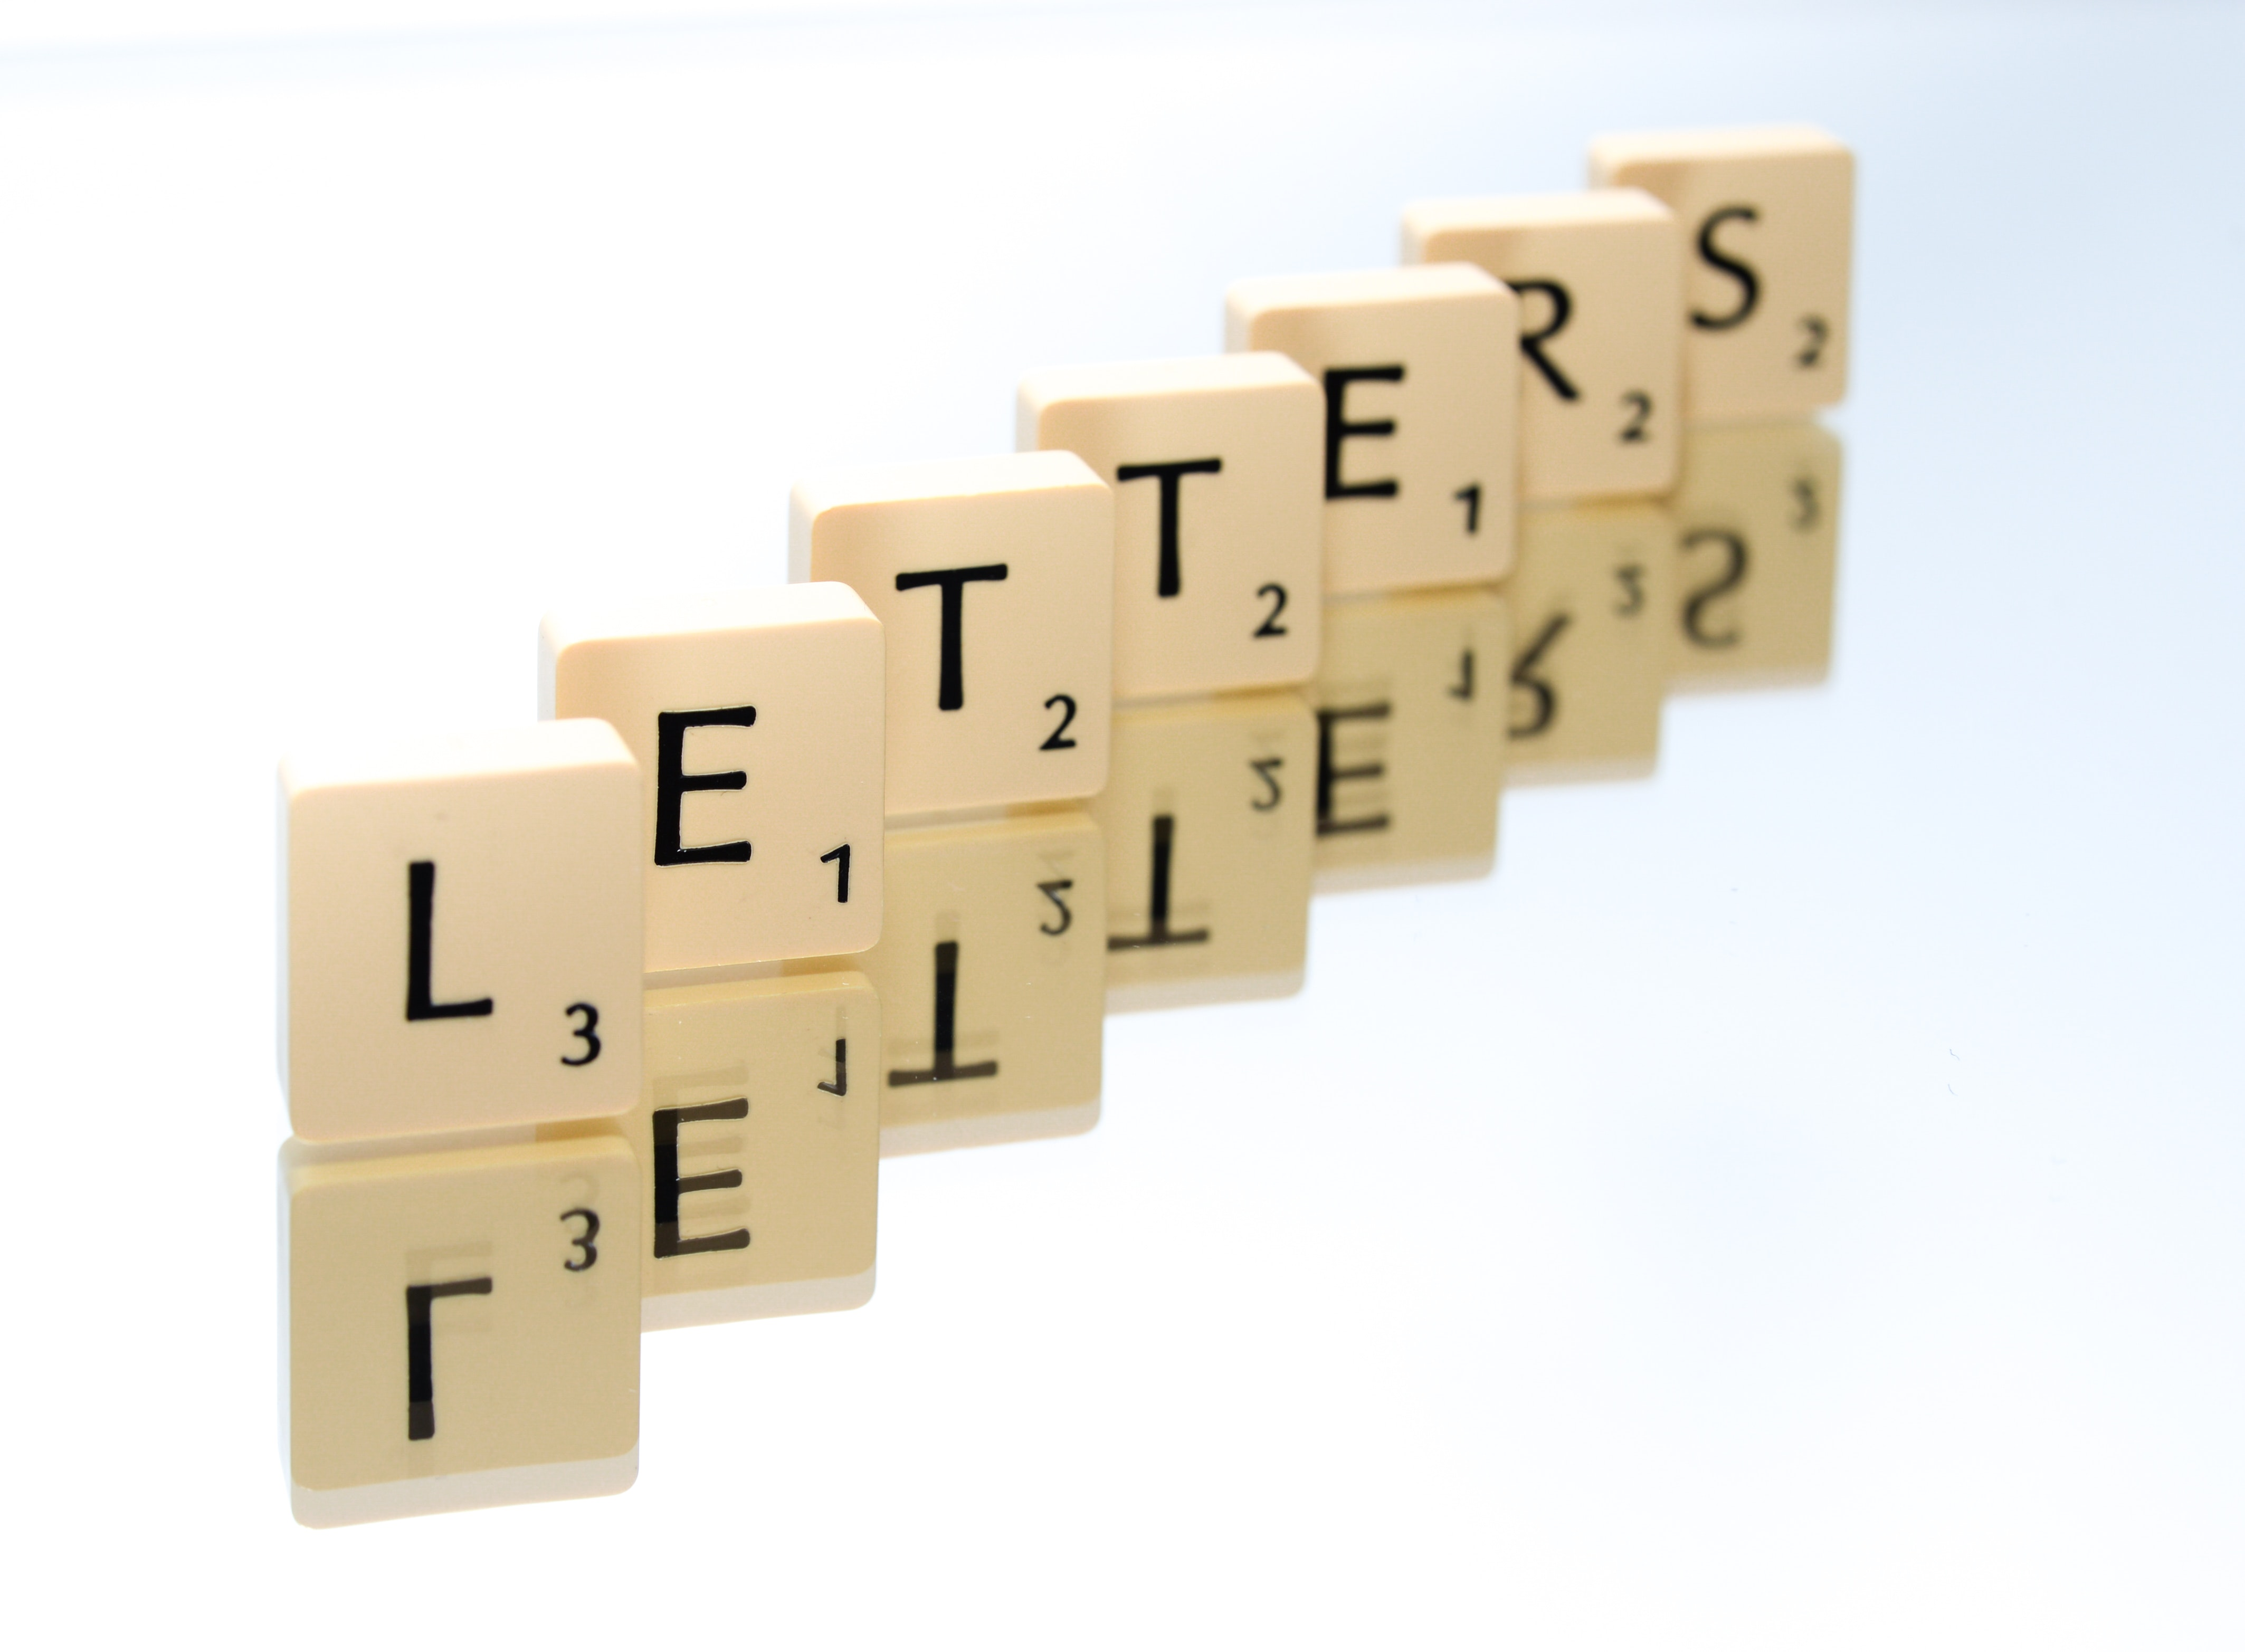 game-letters-reflection-705178.jpg